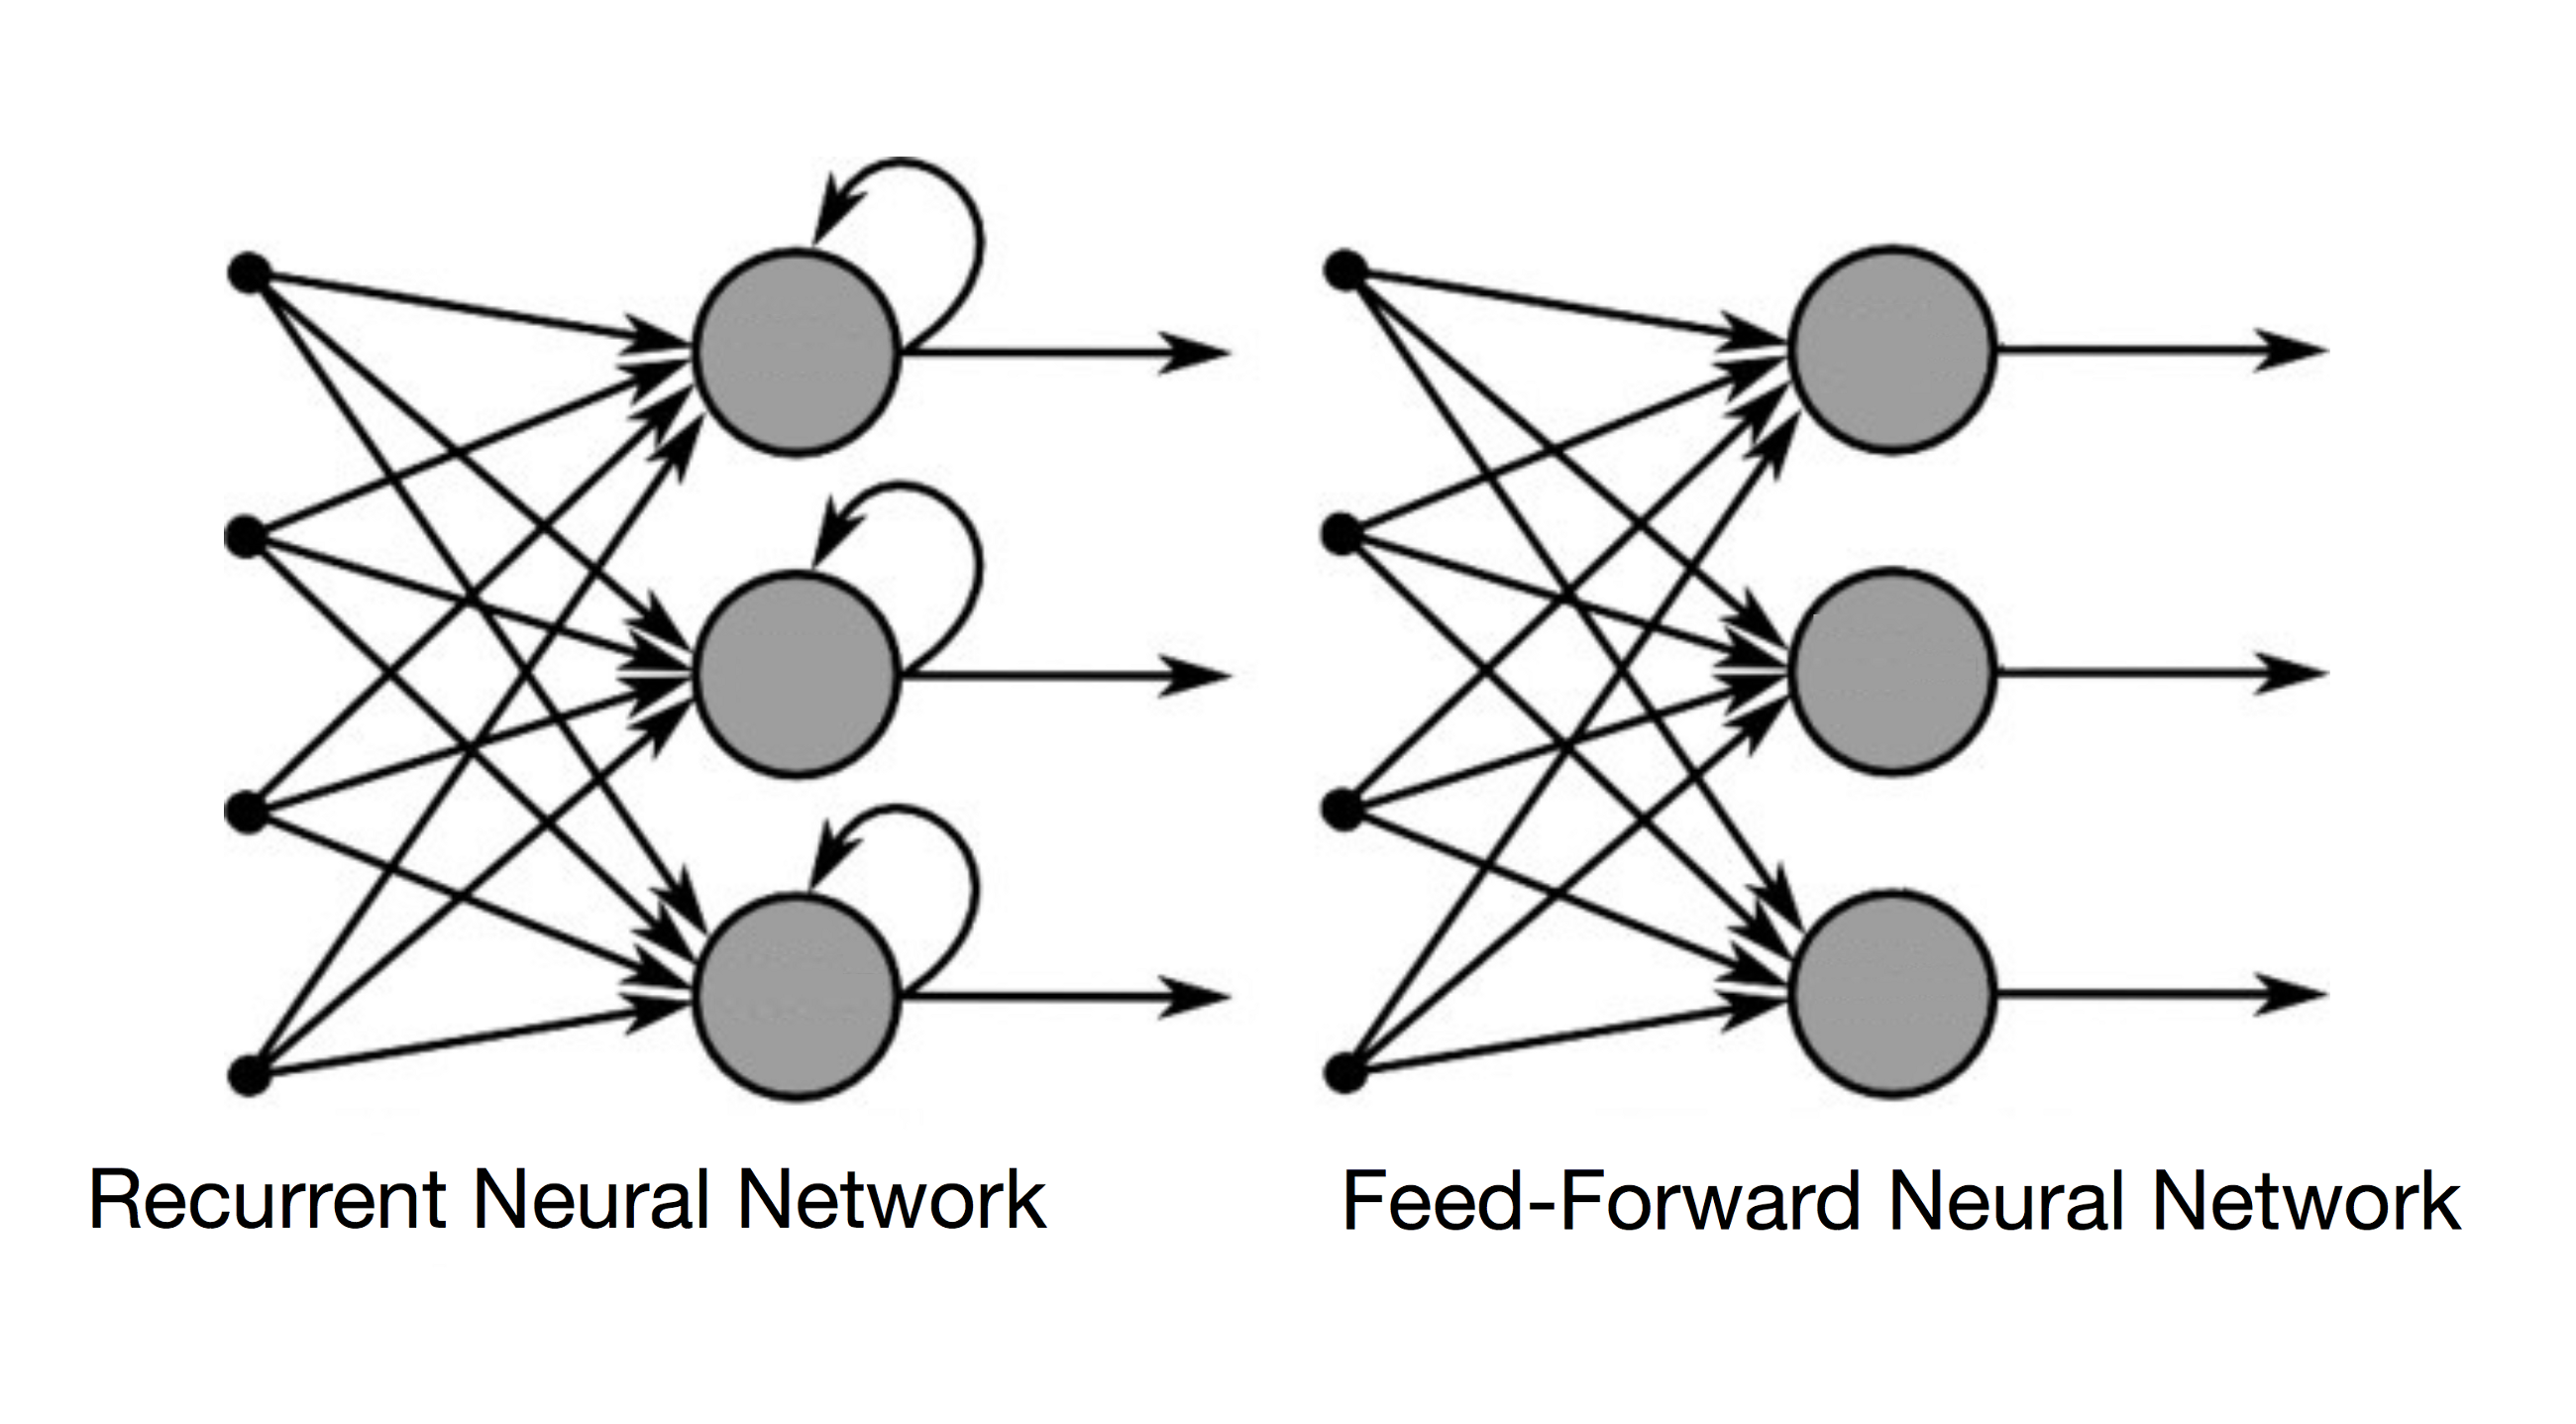 Comparison between Recurrent and Feed-Forward Artificial Neural Network